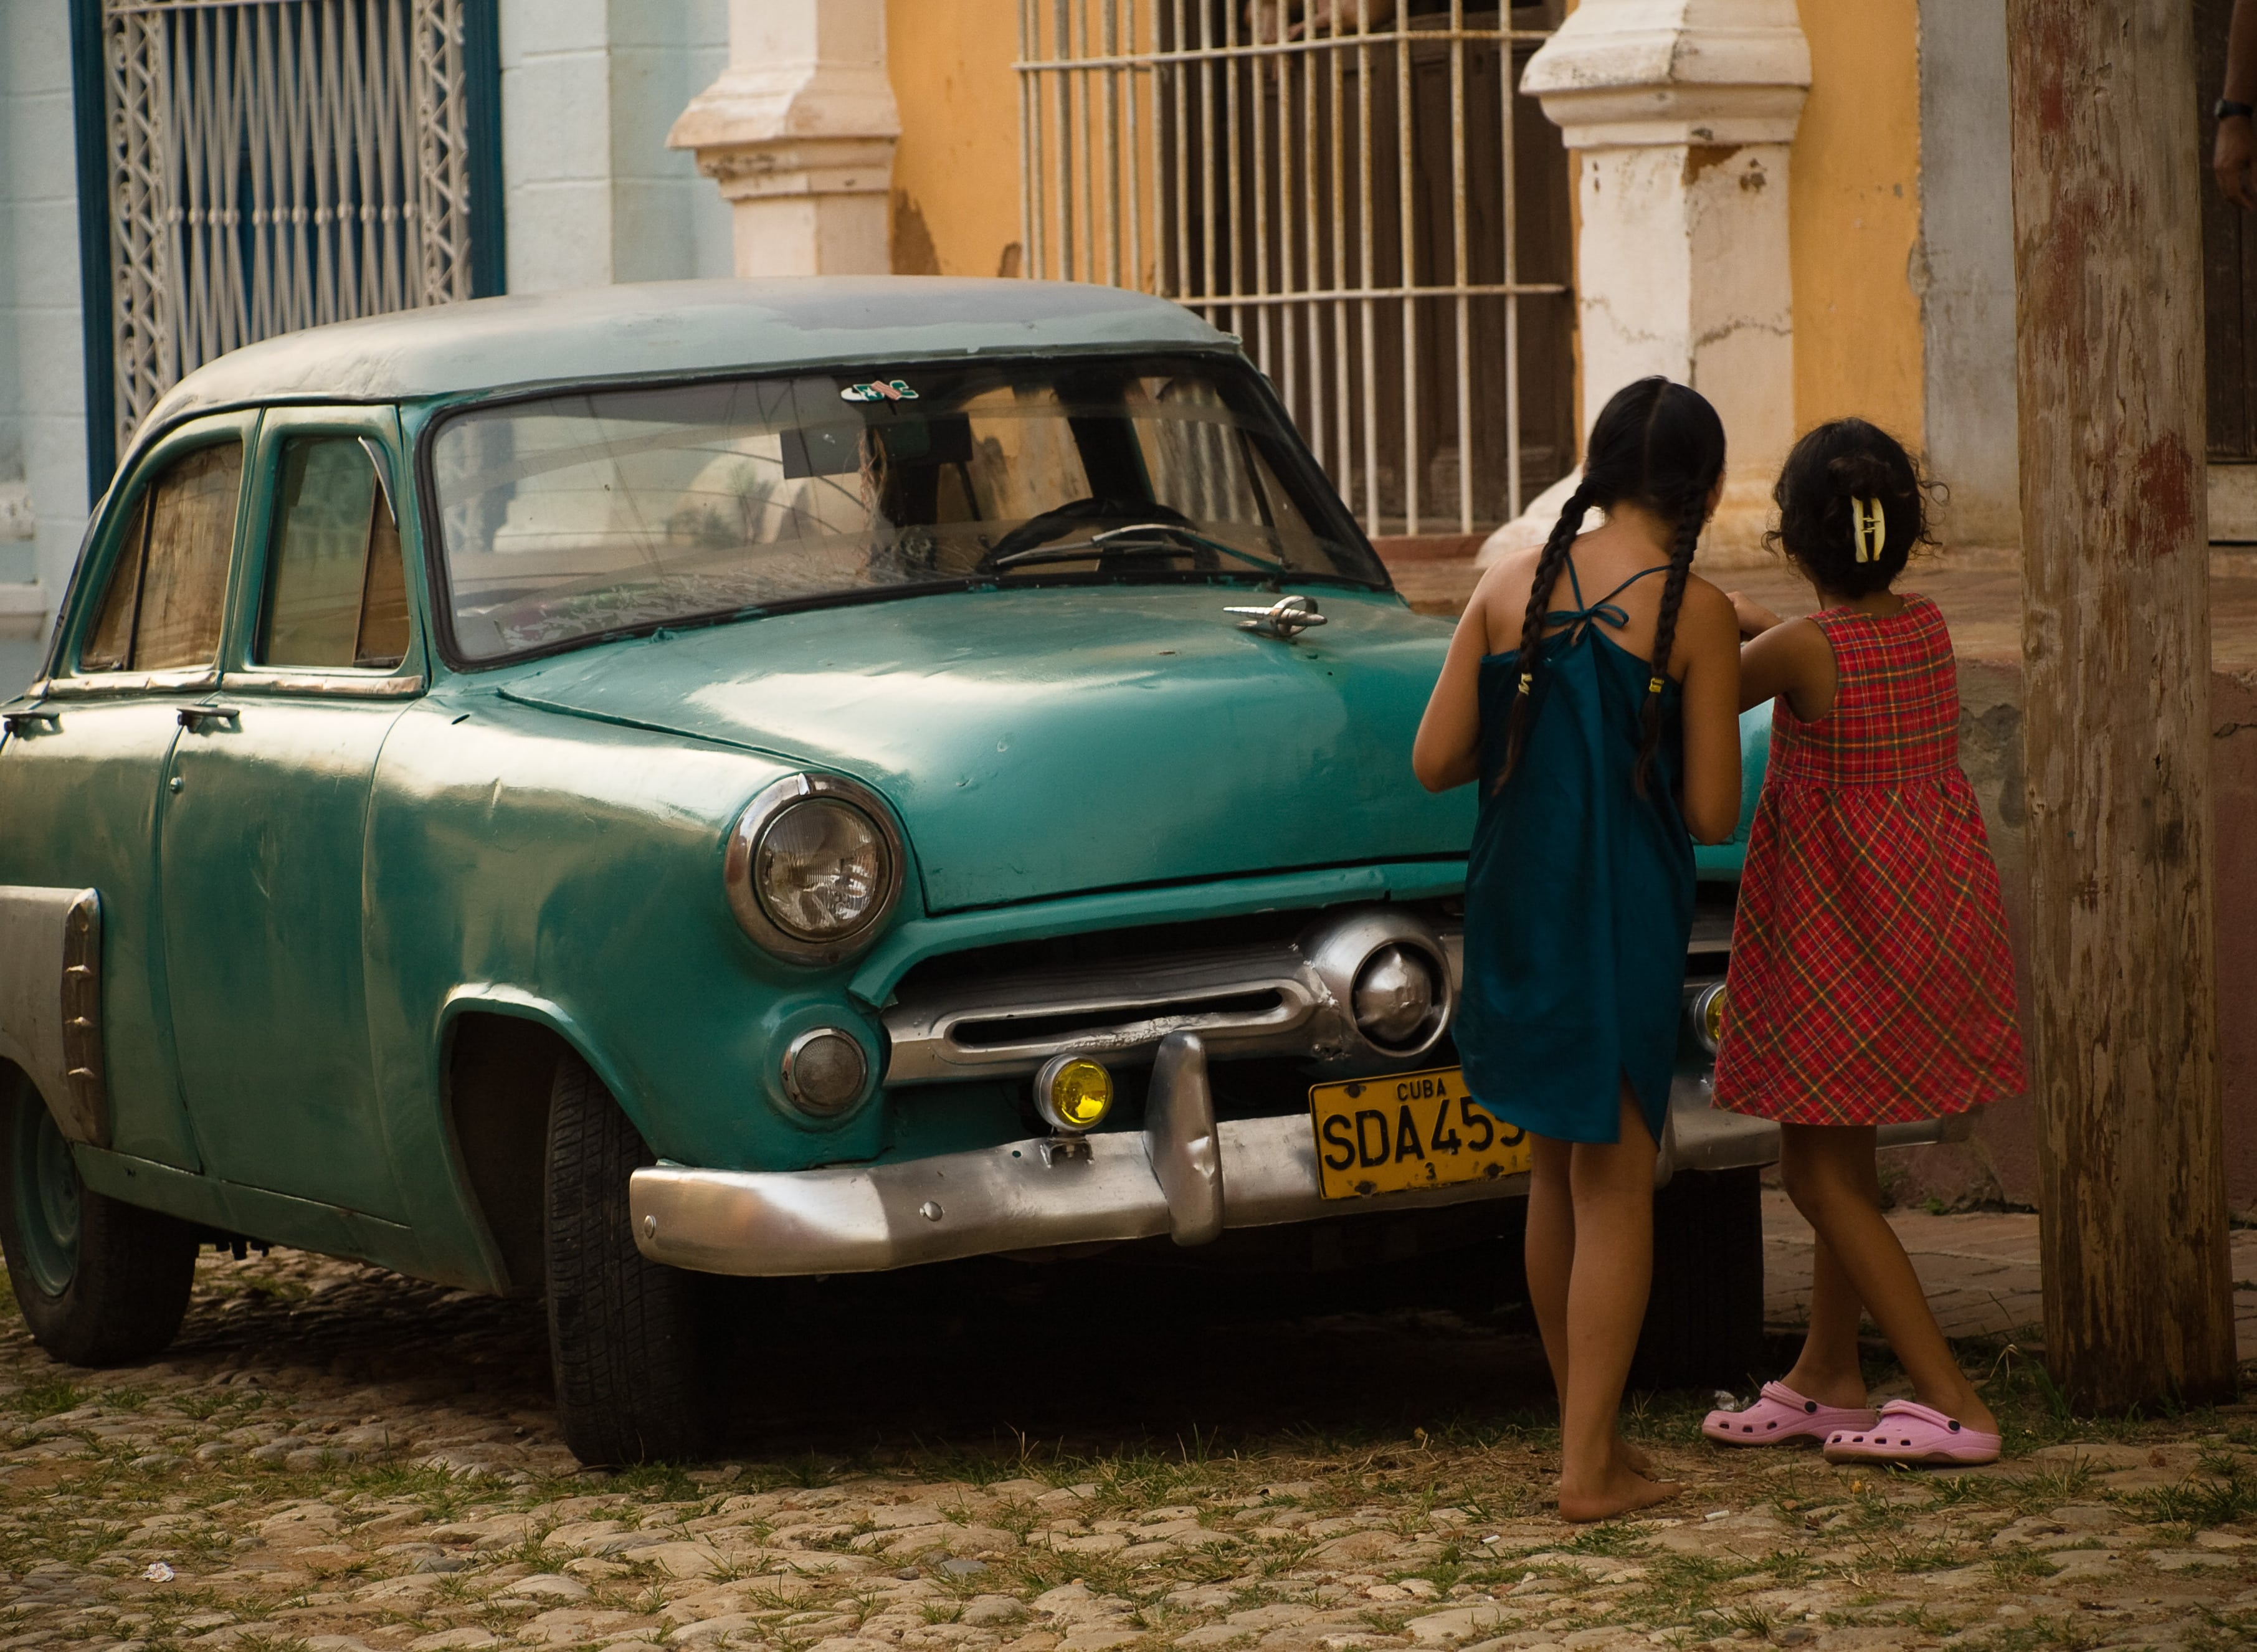 colectivo car cuba how to travel cheap to cuba